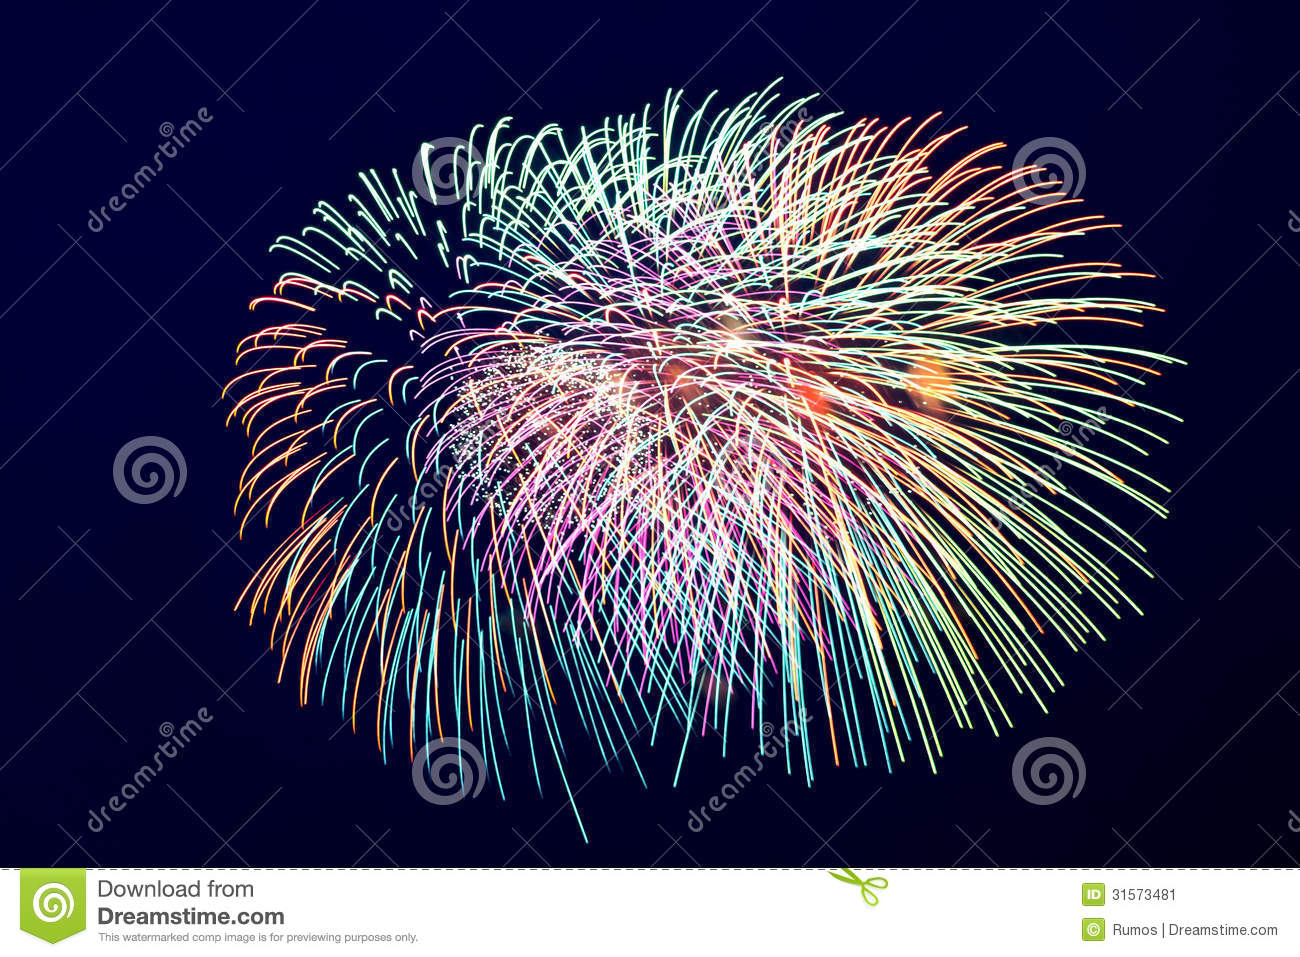 Wallpaper Salute Sky Holiday Colorful 3376x4220: Colorful Fireworks On The Dark Dlue Sky Background Stock